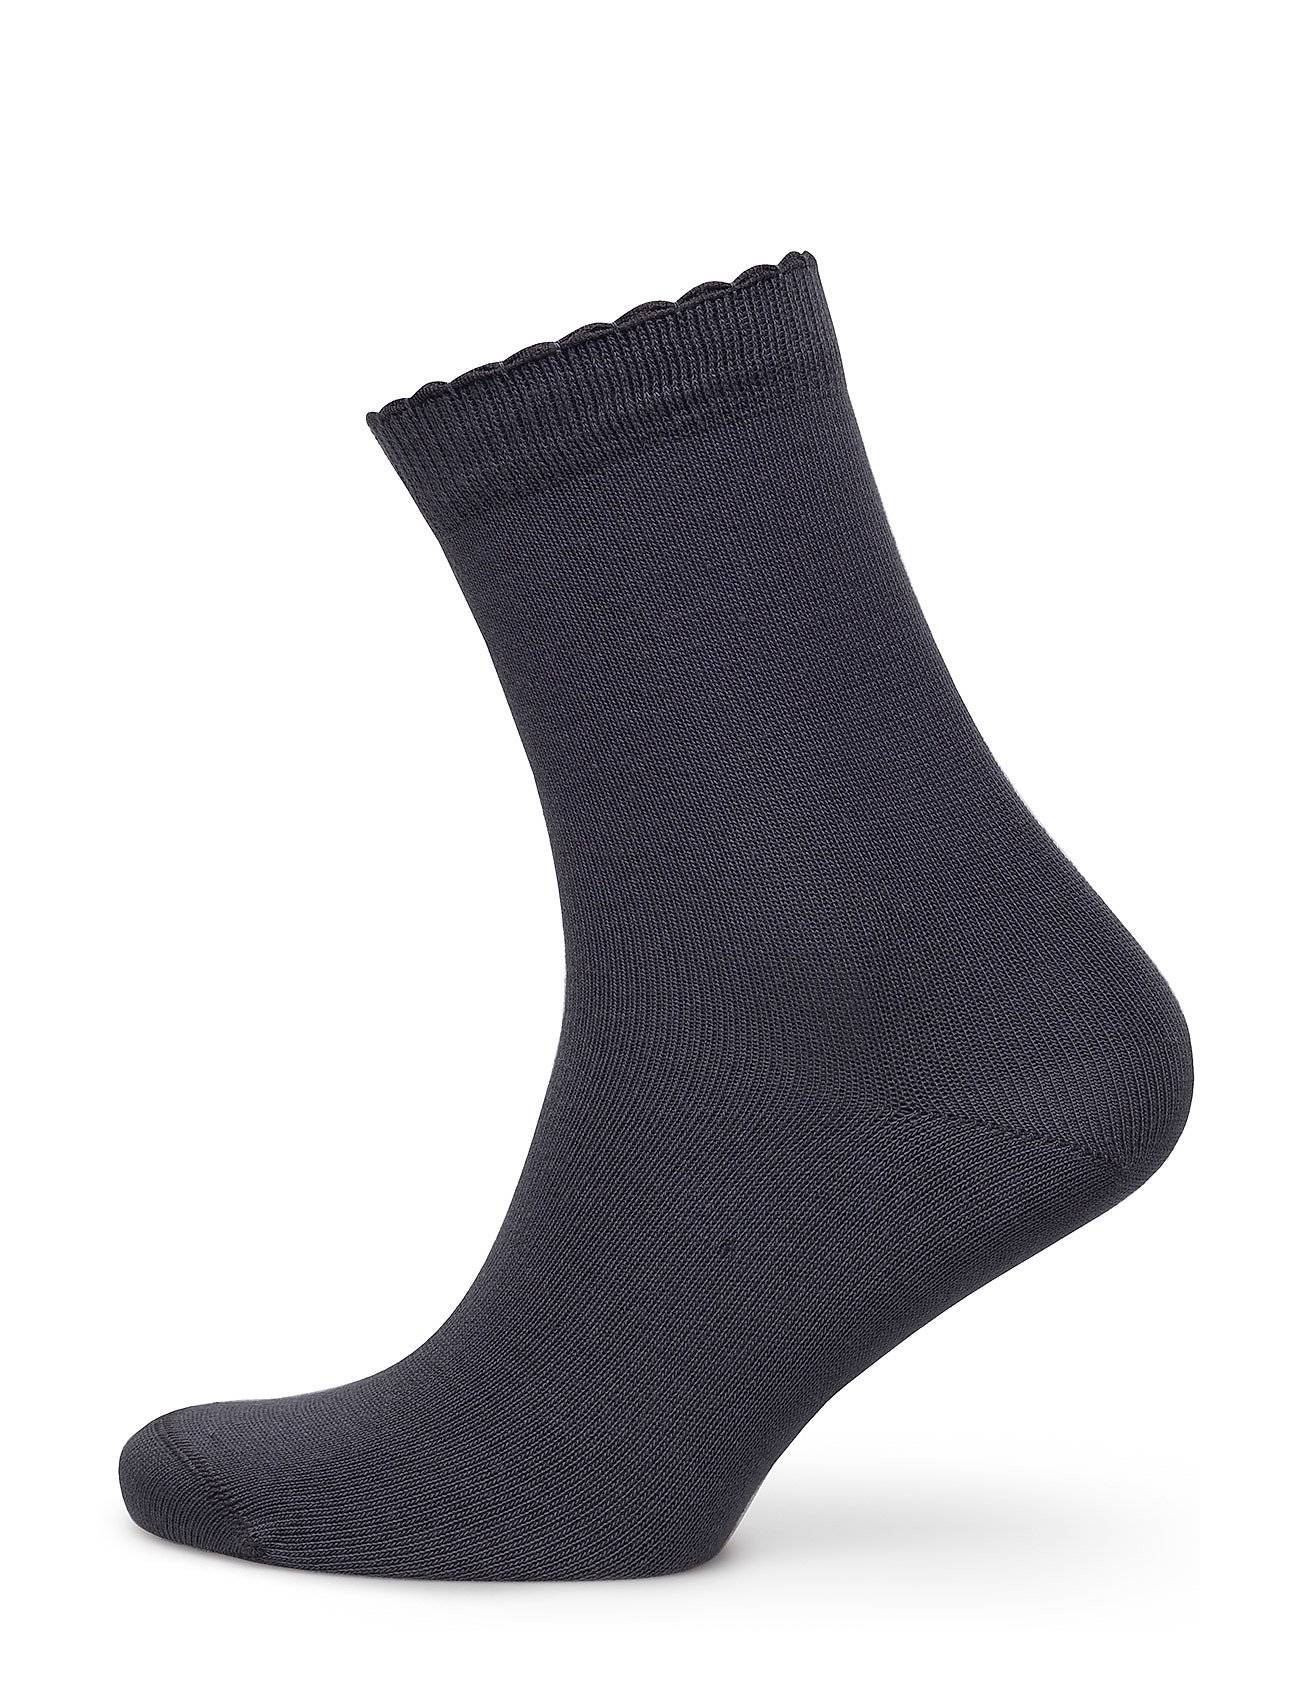 Vogue Ladies Anklesock, Bamboo Socks